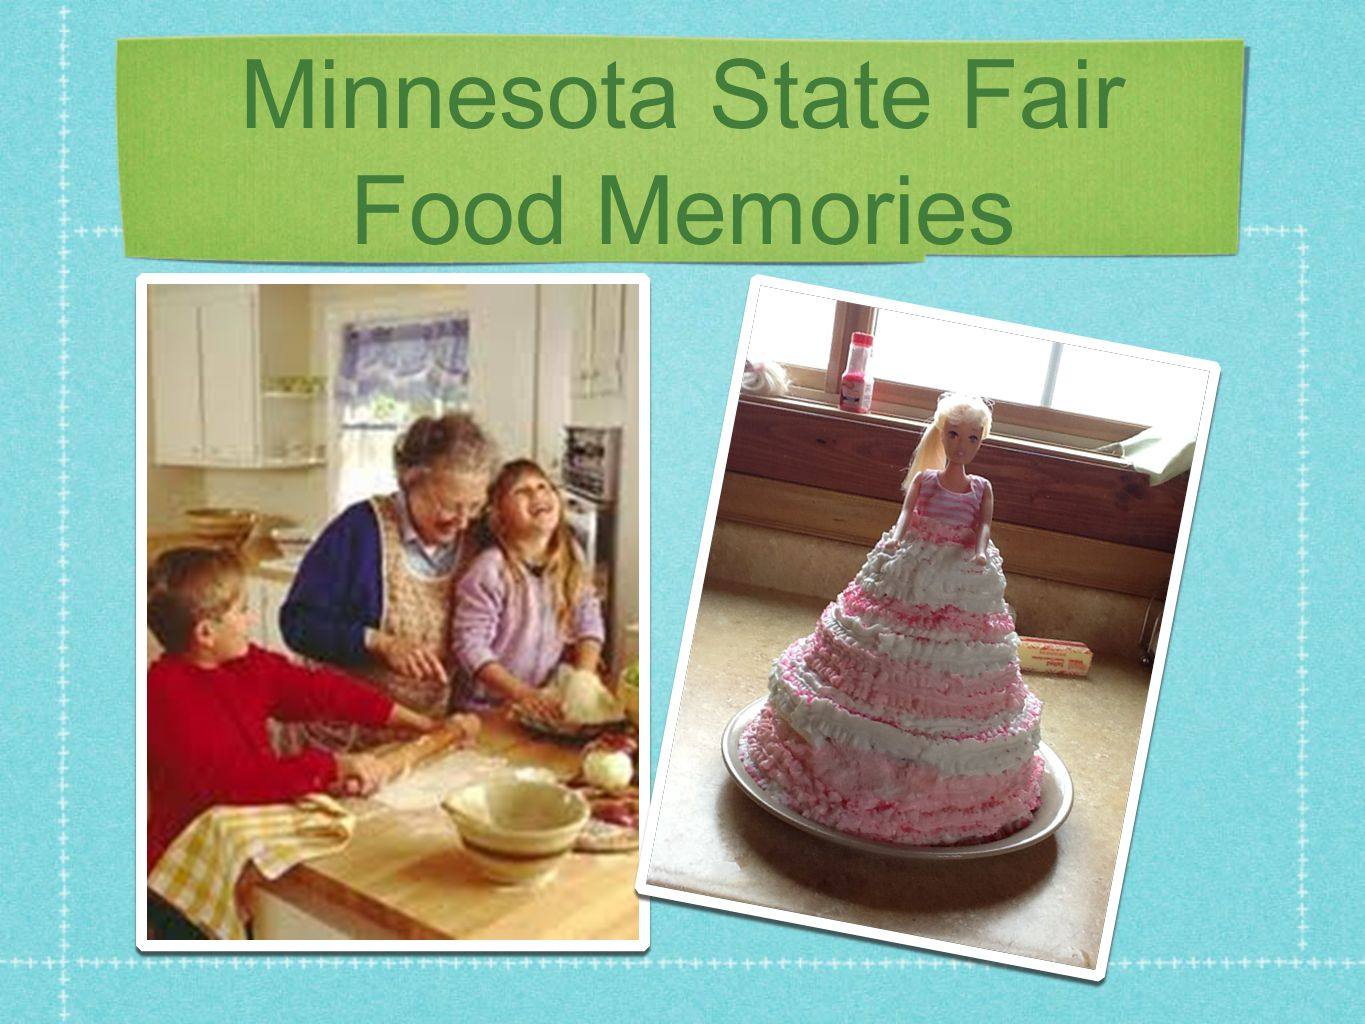 Minnesota State Fair Food Memories